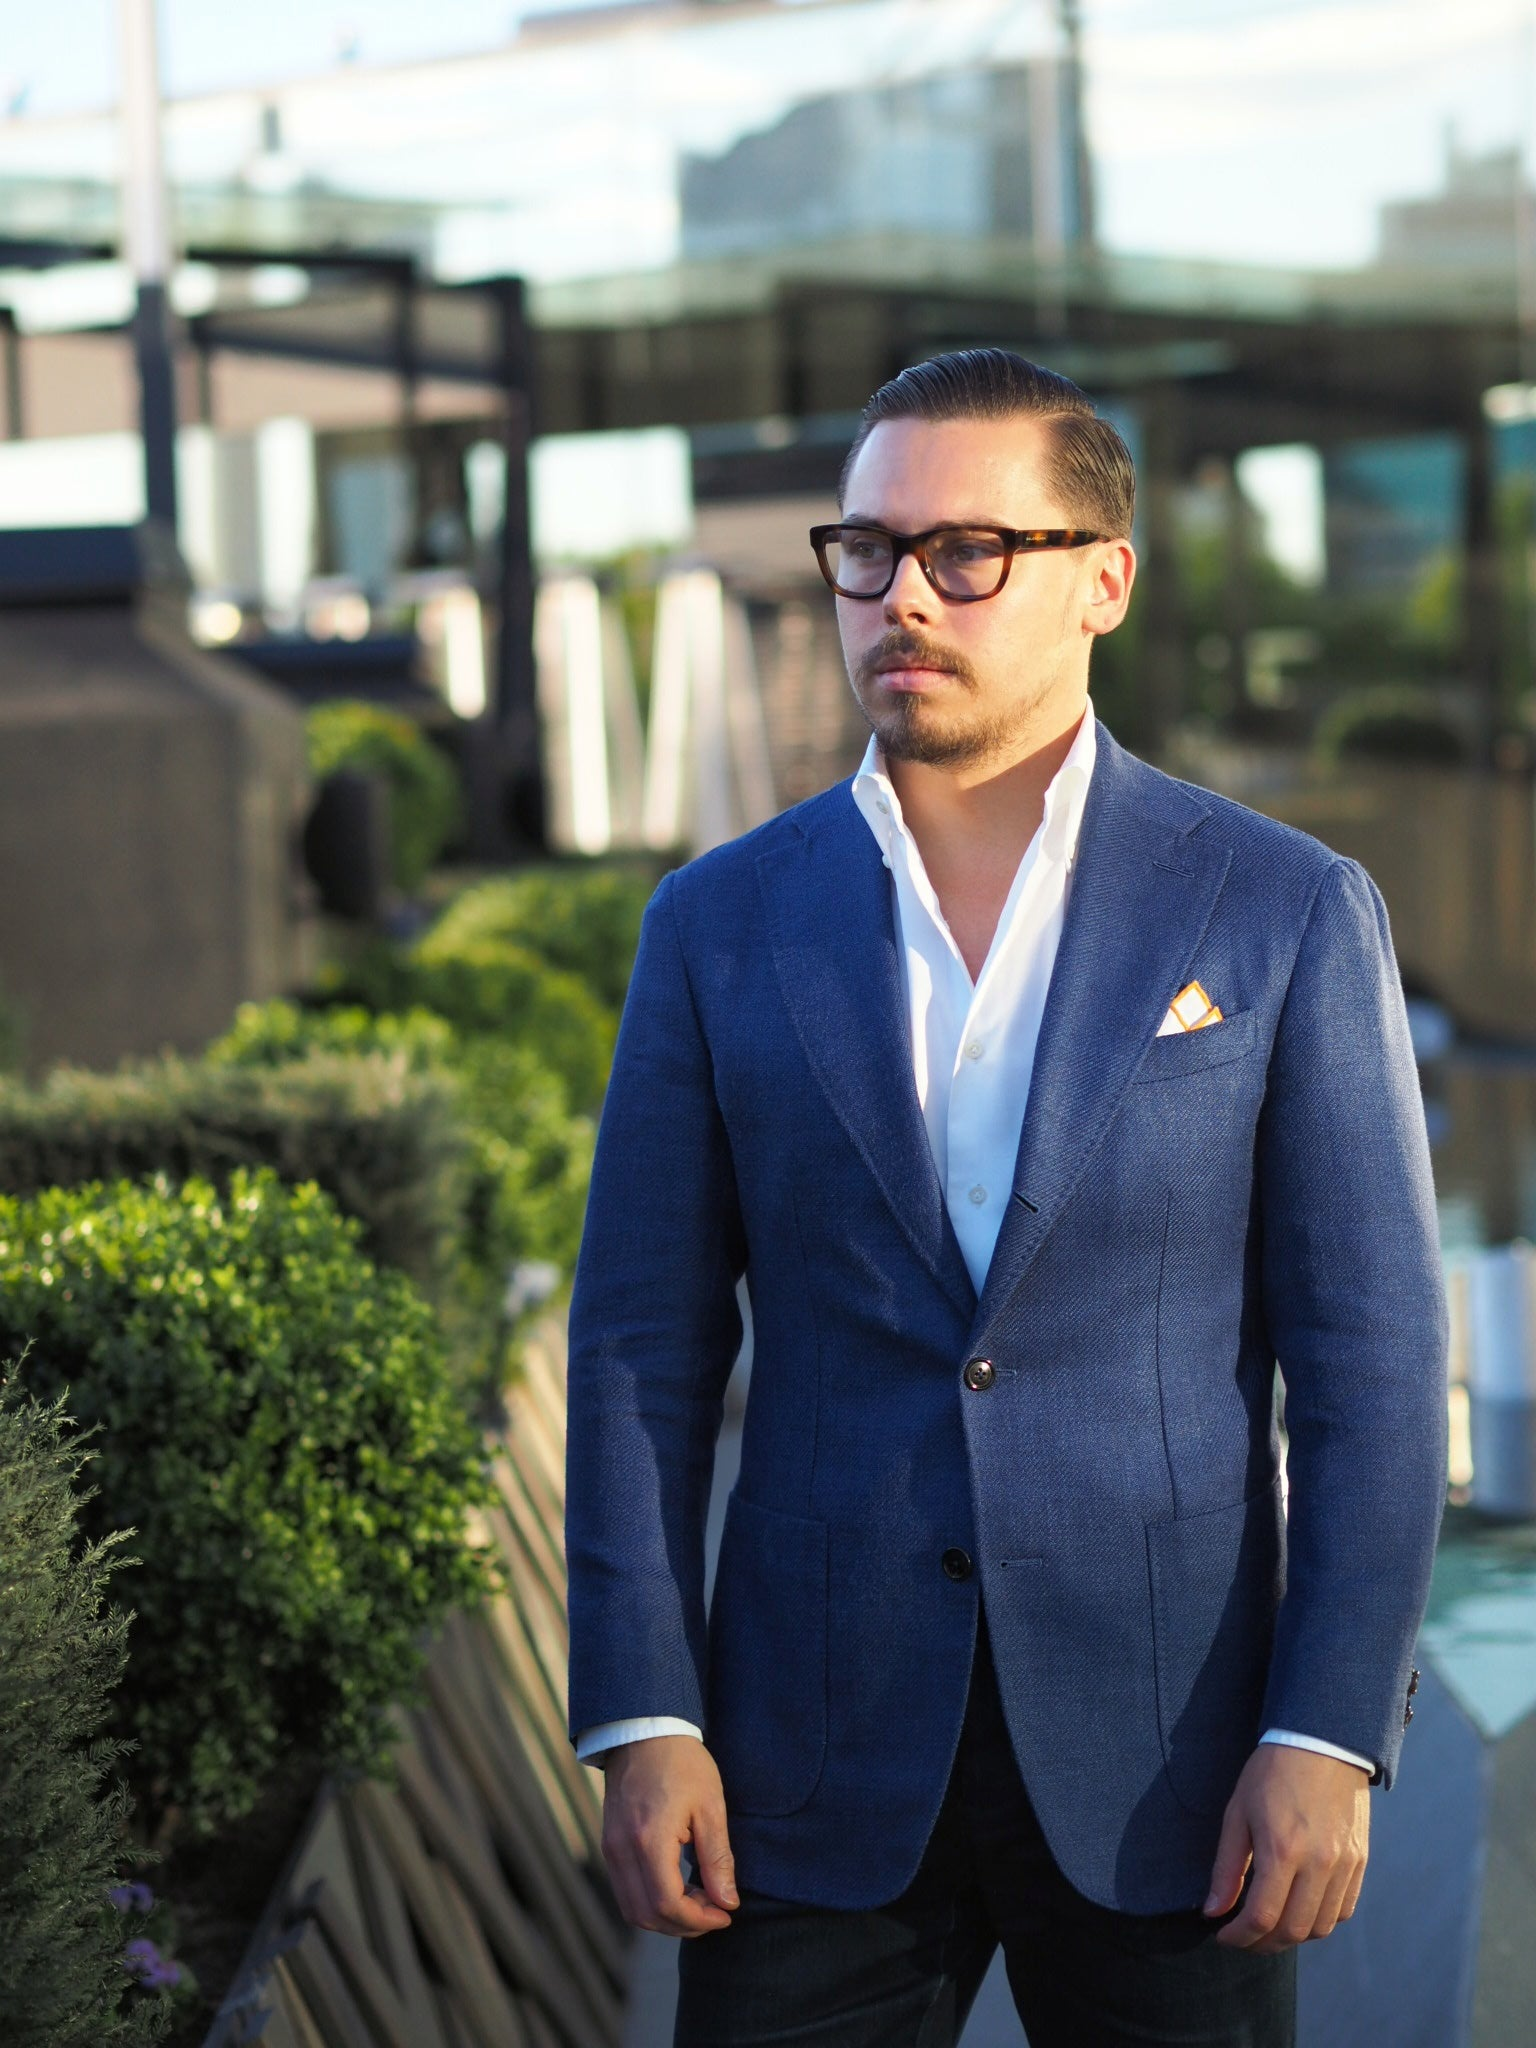 Blue suit jacket as a sport coat - remember to pay attention to the fit of your jacket